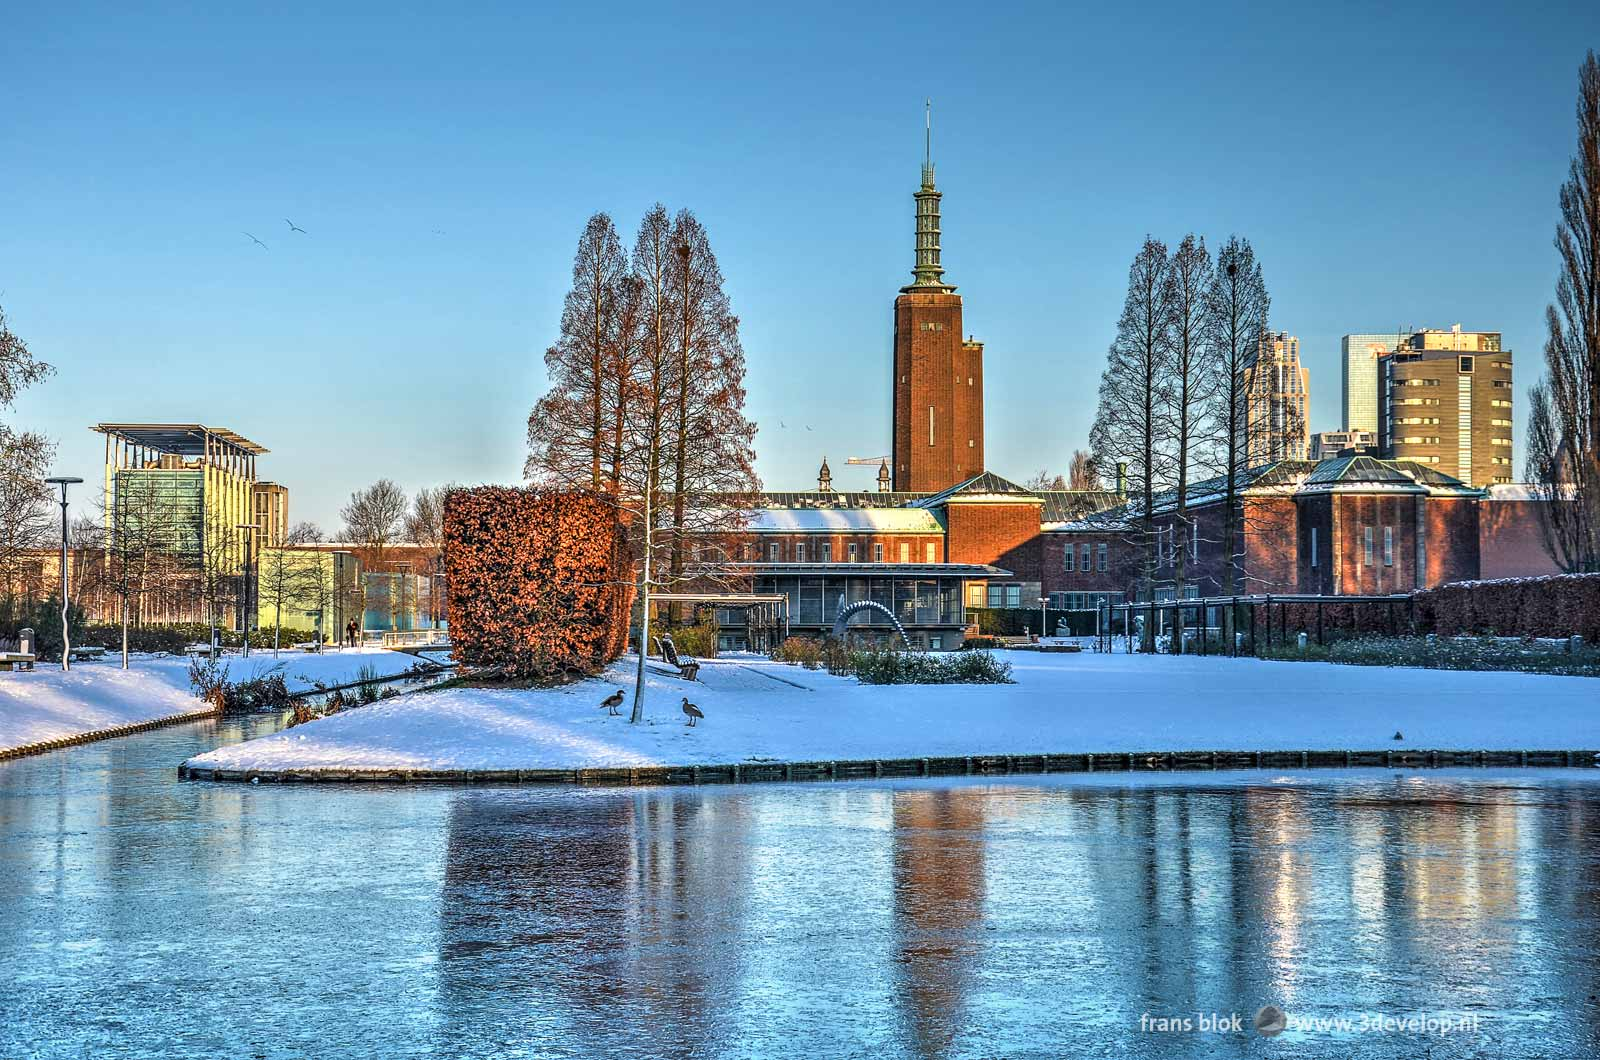 Photo from the (short) winter of 2014, with the snowy Museumpark in Rotterdam, a frozen over pond, the Boymans museum, the New Institute and the Parkhotel